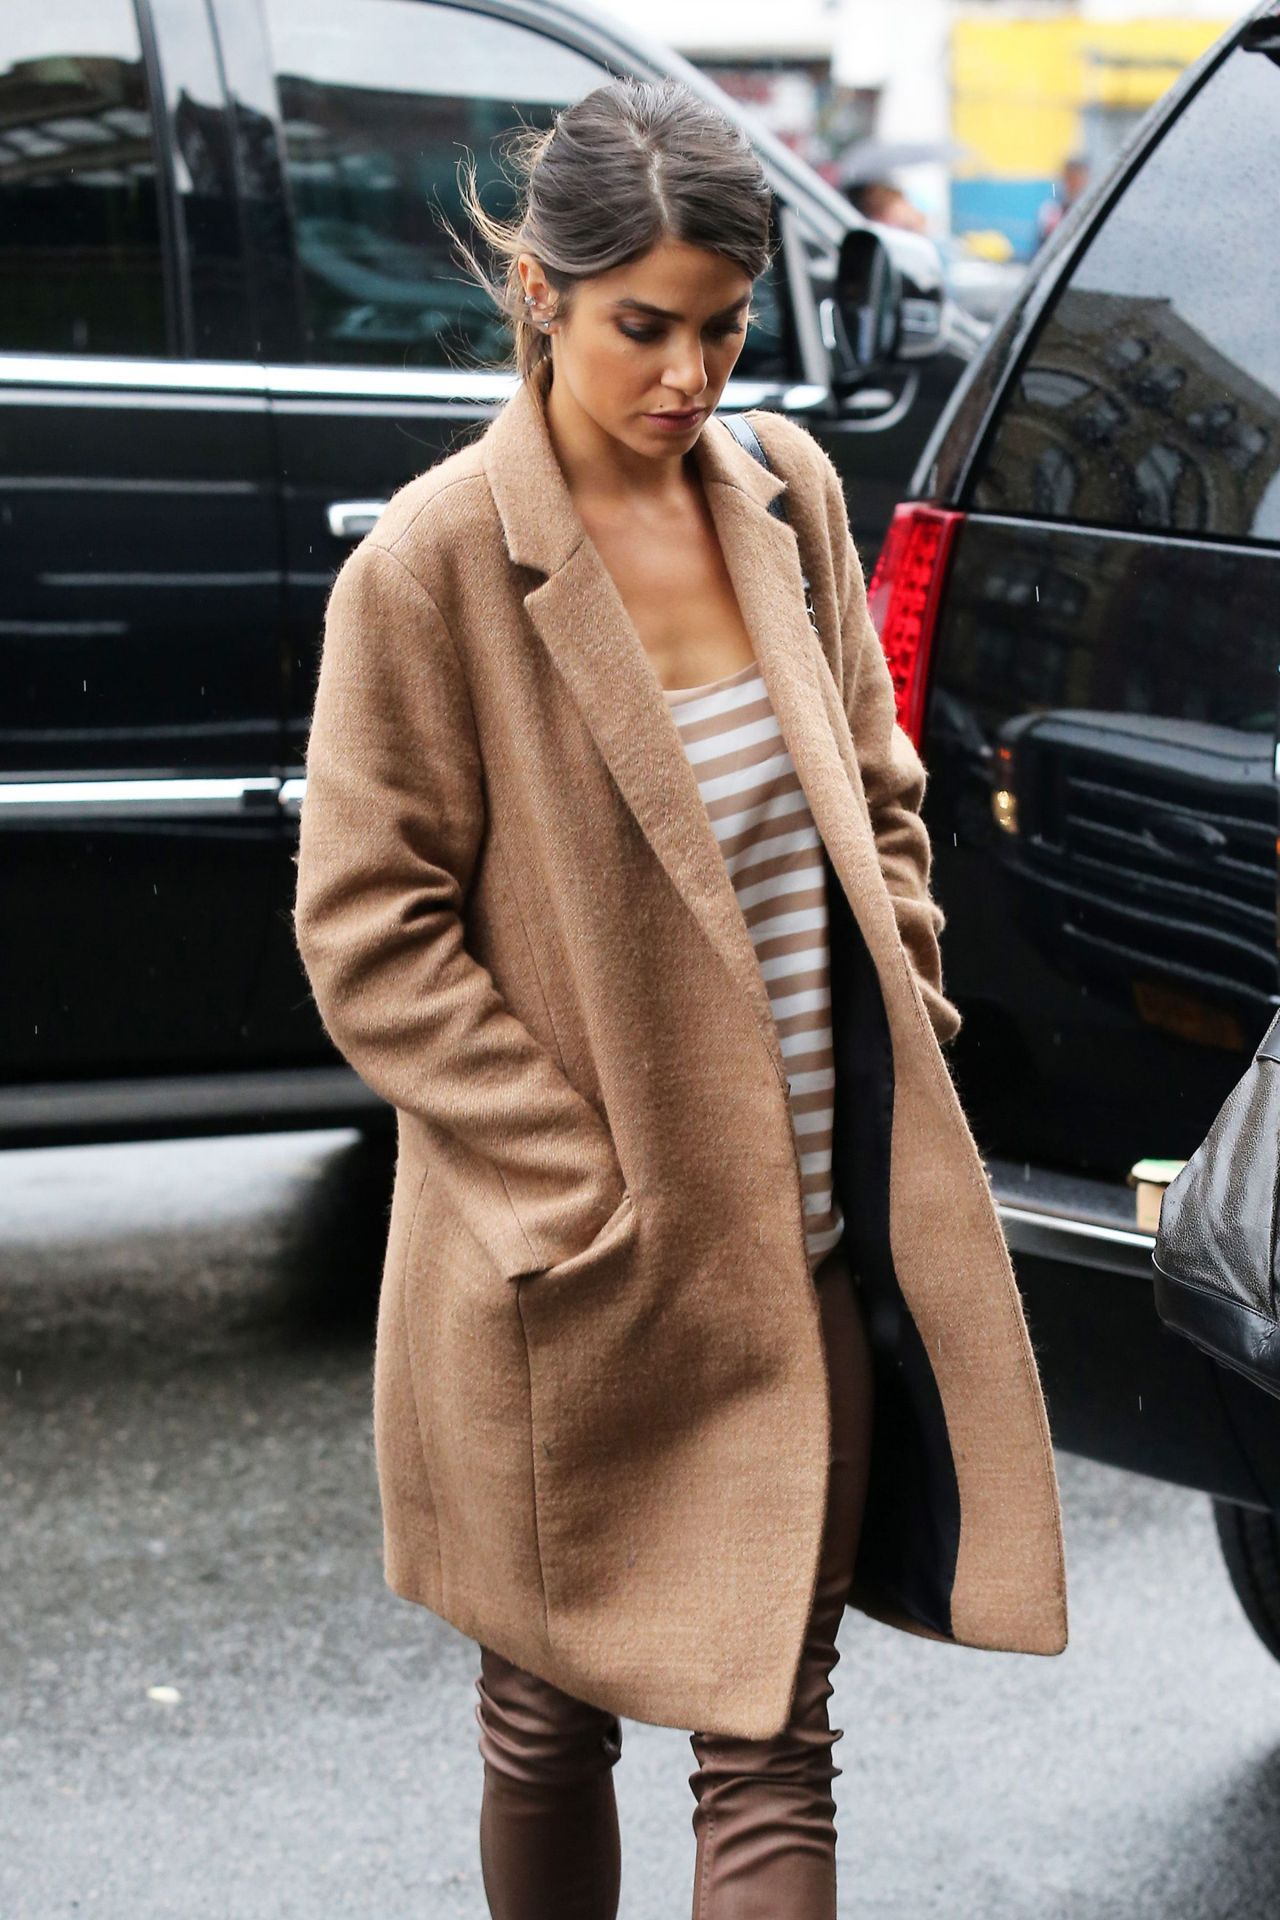 Nikki Reed in Soho in New York City - April 2014